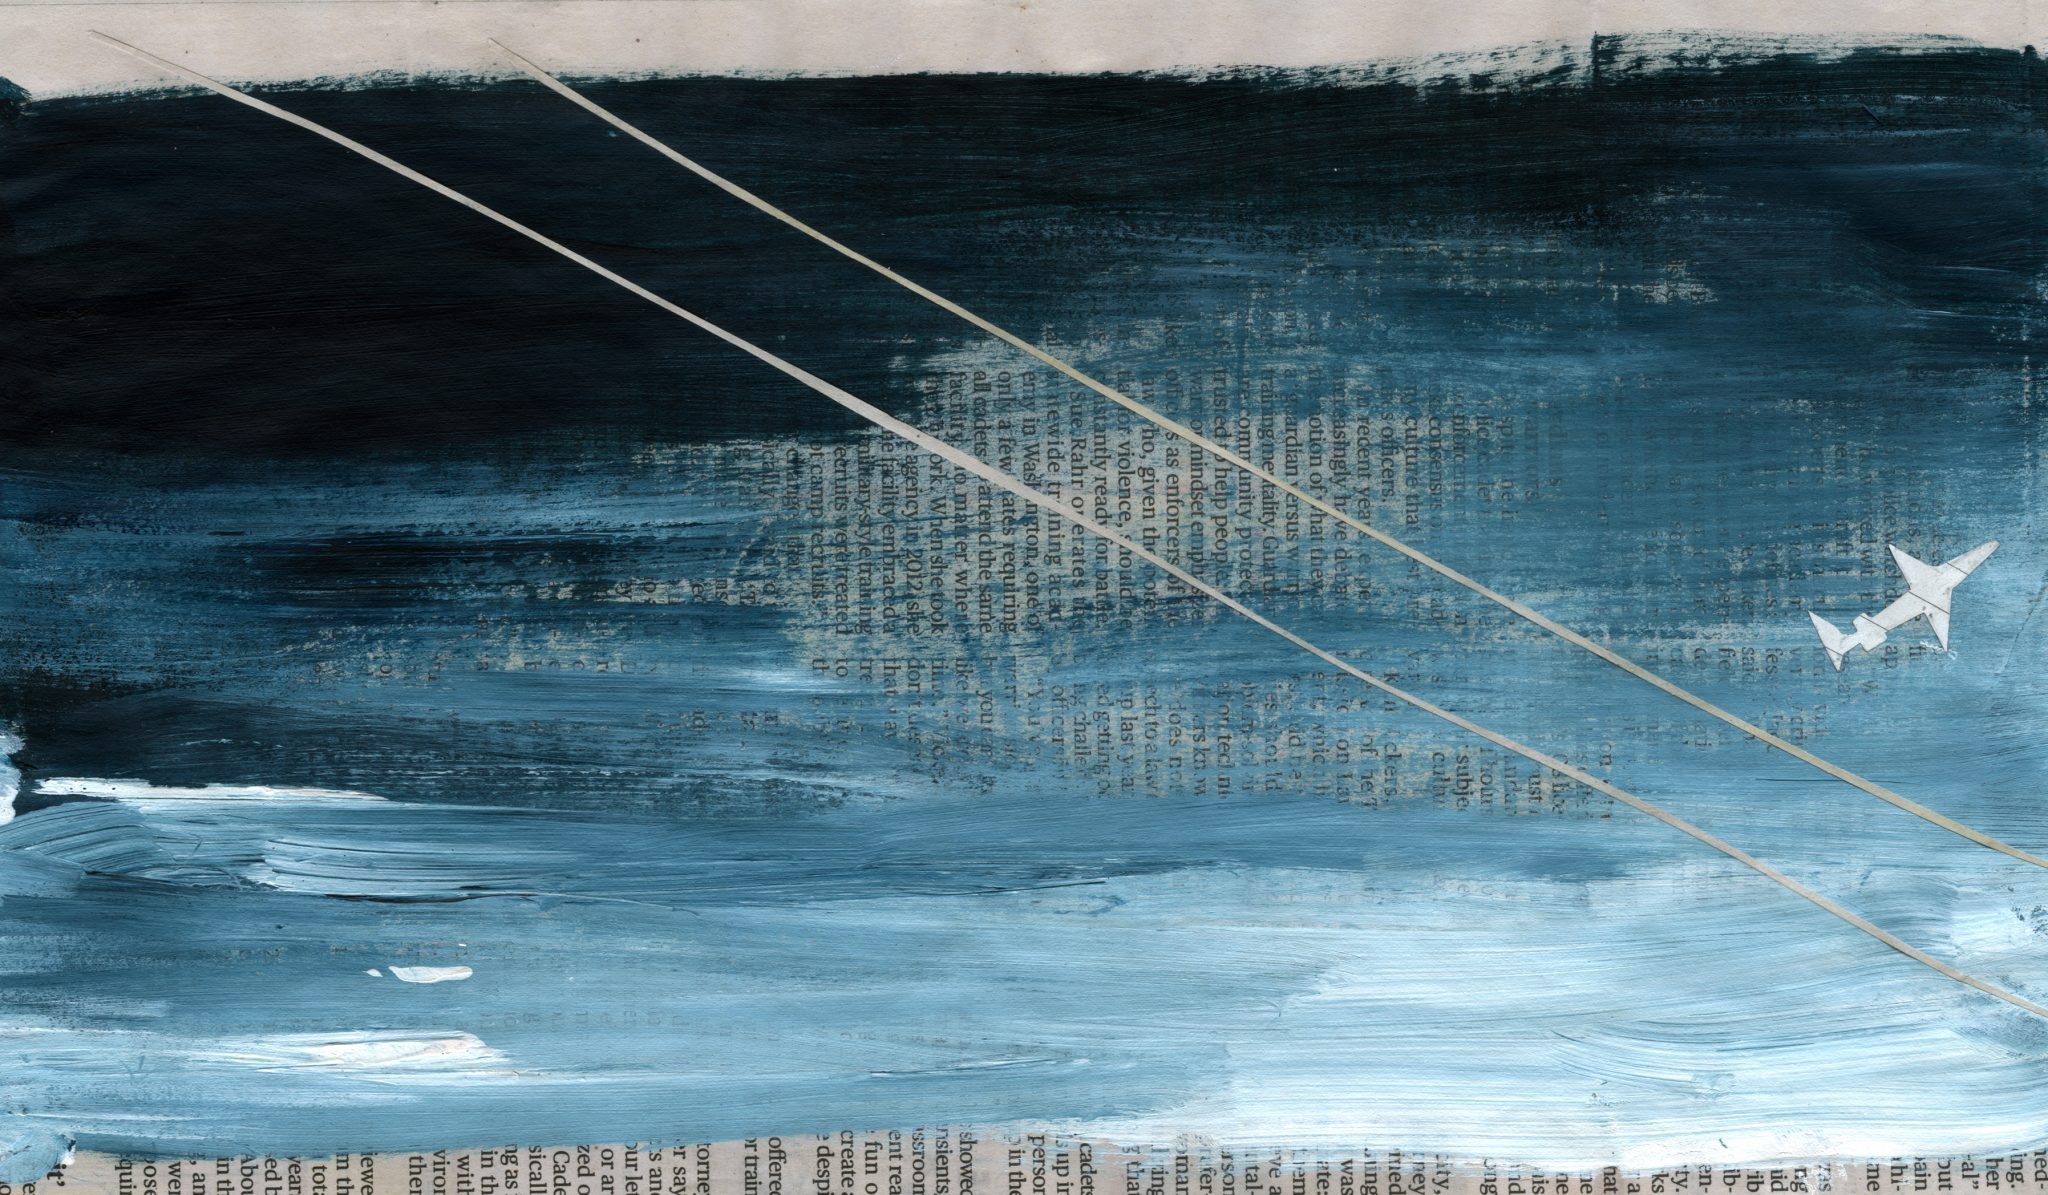 Blue and white painted in newsprint, white lines indicate power lines with a white airplane in close proximity. Second image has blue paint over light pink paint indicating a sunset. There is a white cut out single-wide in the foreground and red dots indicating a radio tower.